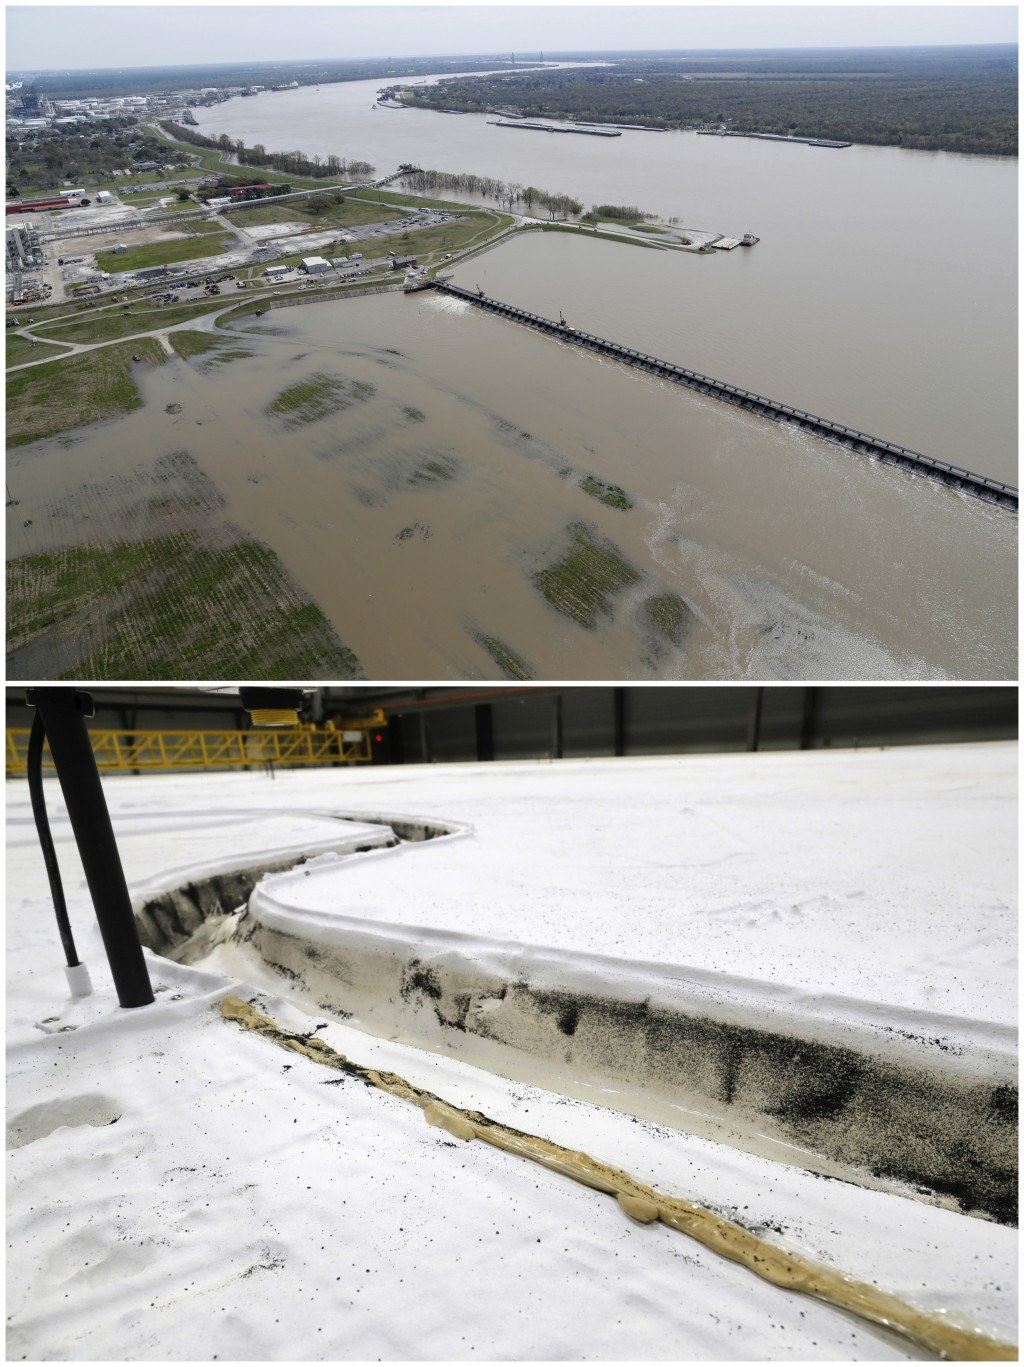 This combo of photos shows the opening of the Bonnet Carre spillway, above, a river diversion structure which diverts water from the rising Mississipp